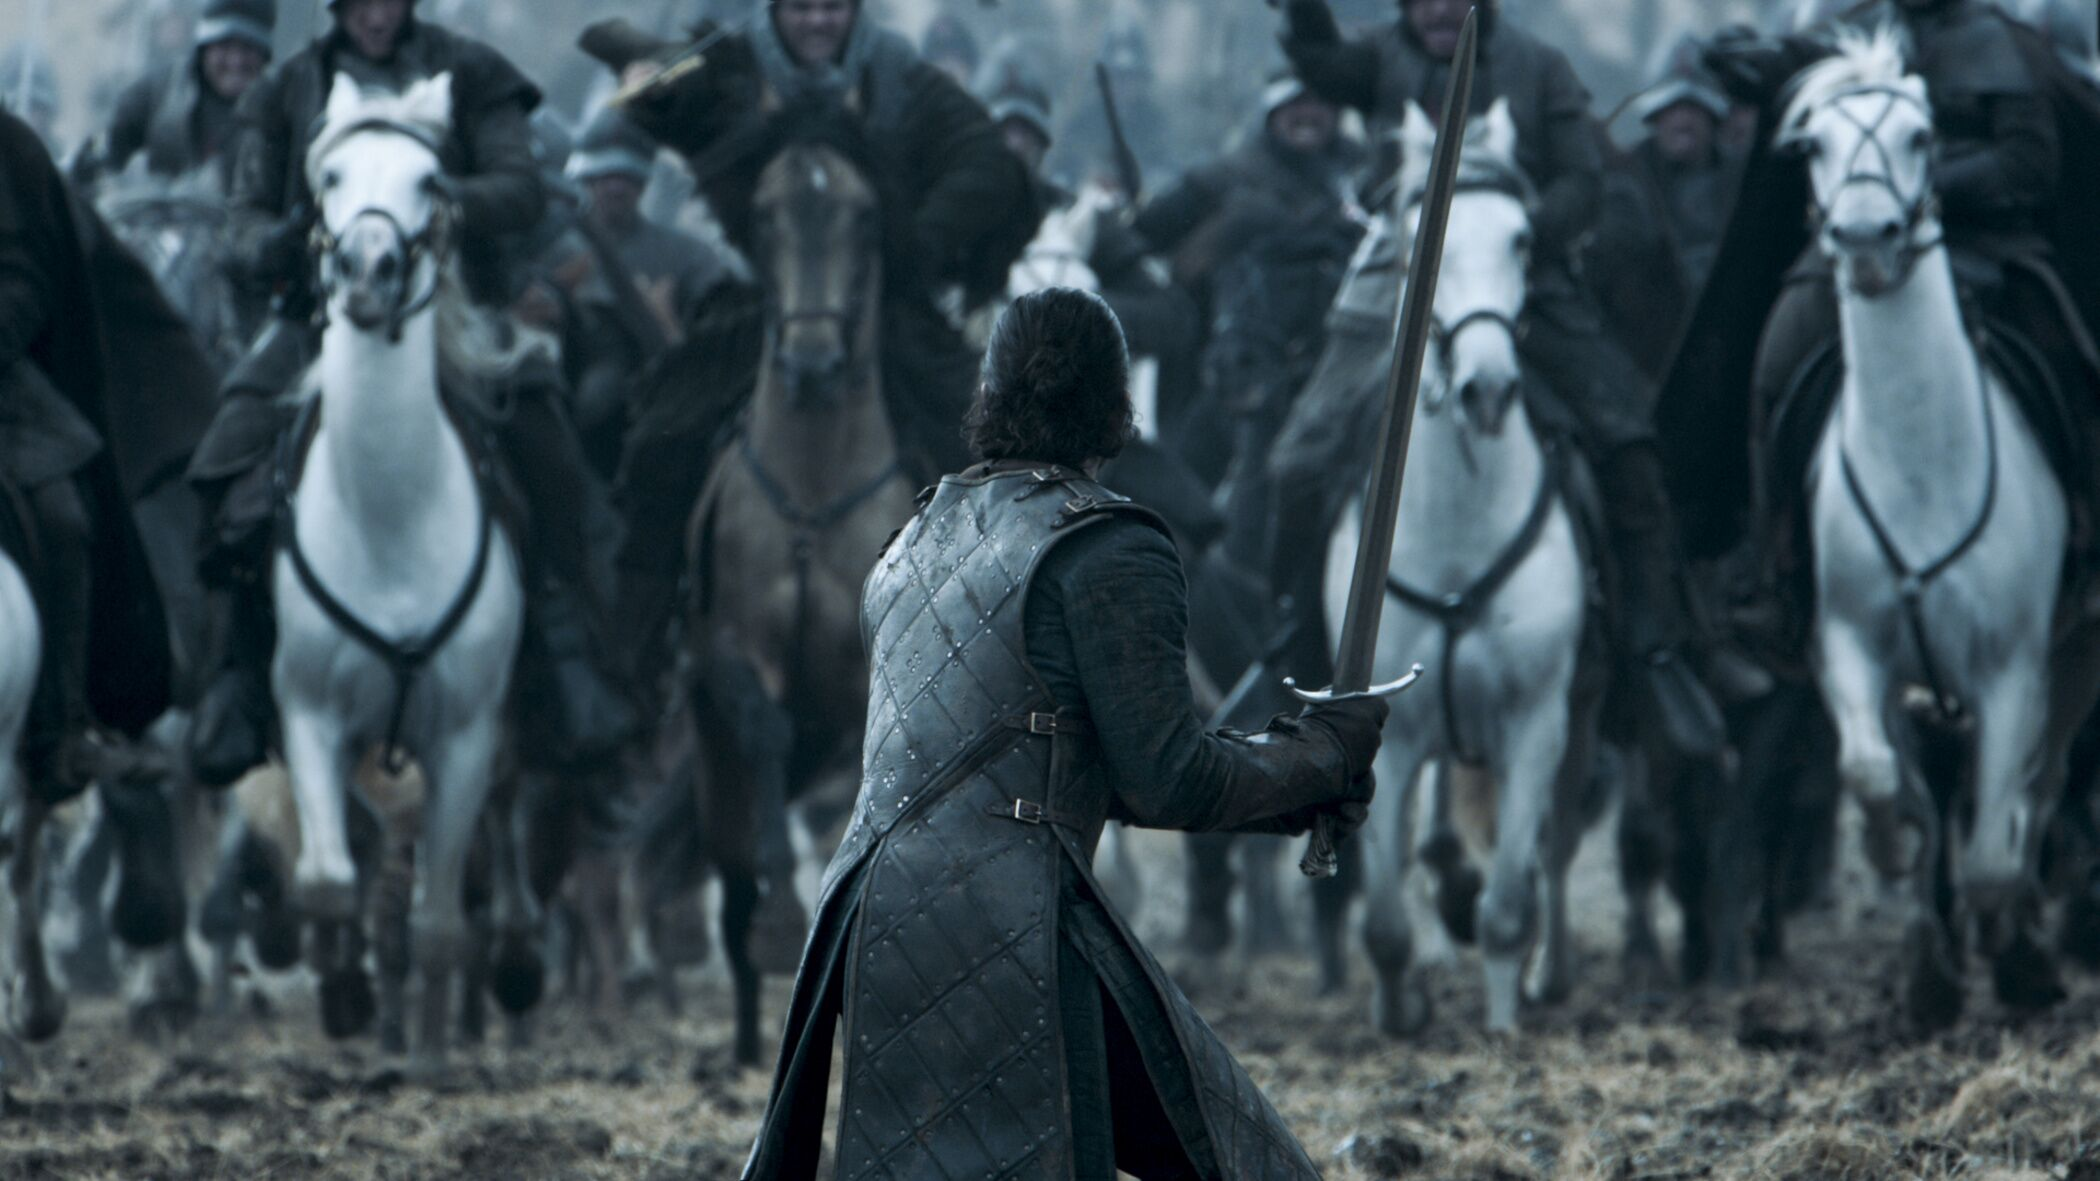 Game of Thrones season 8 premiere month revealed!